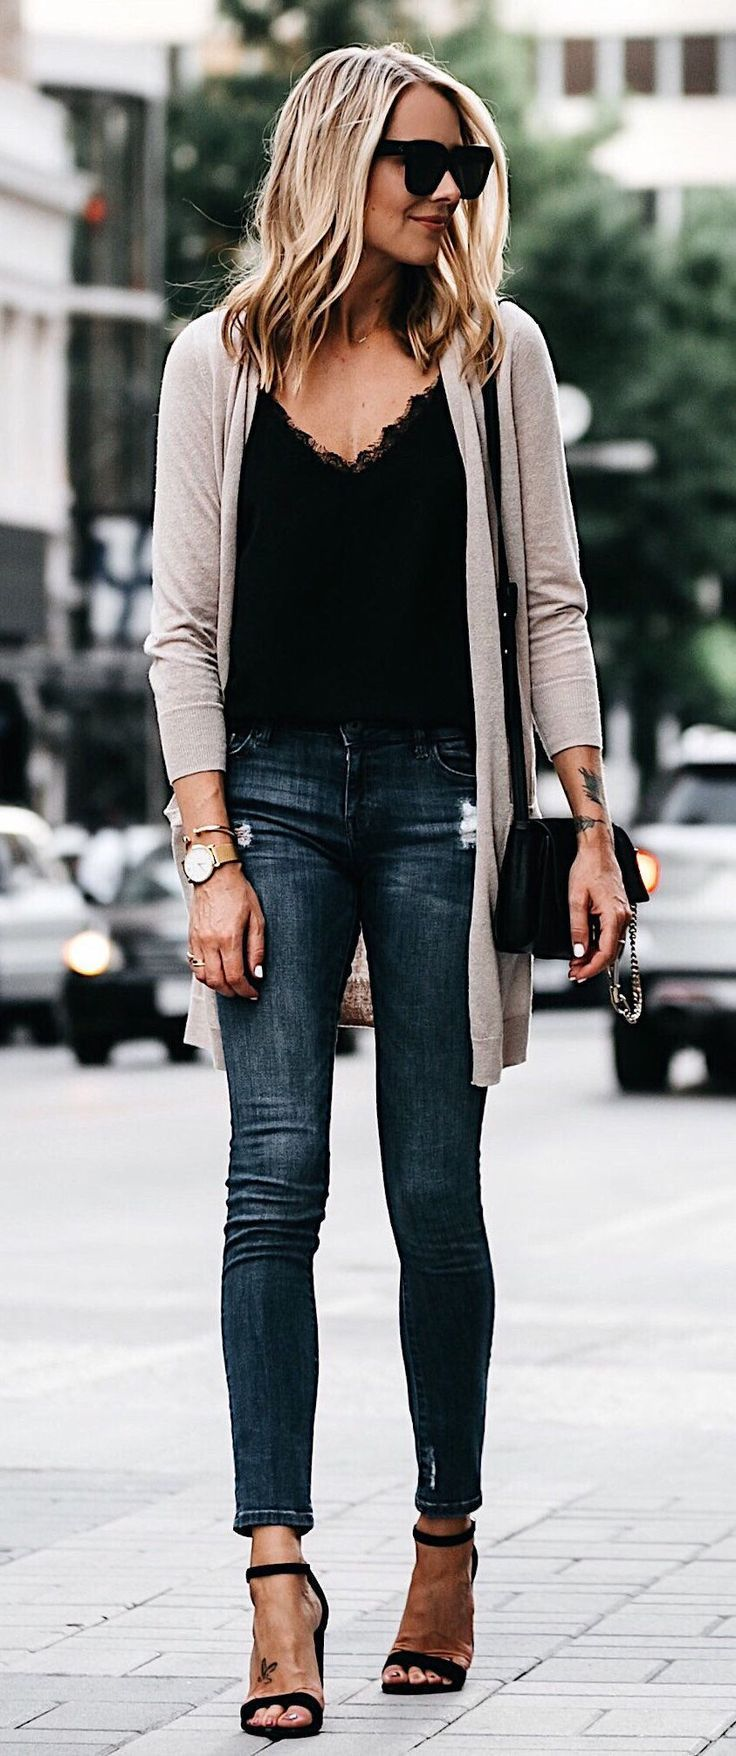 21 Casual Fall Outfit Ideas for You to Steal